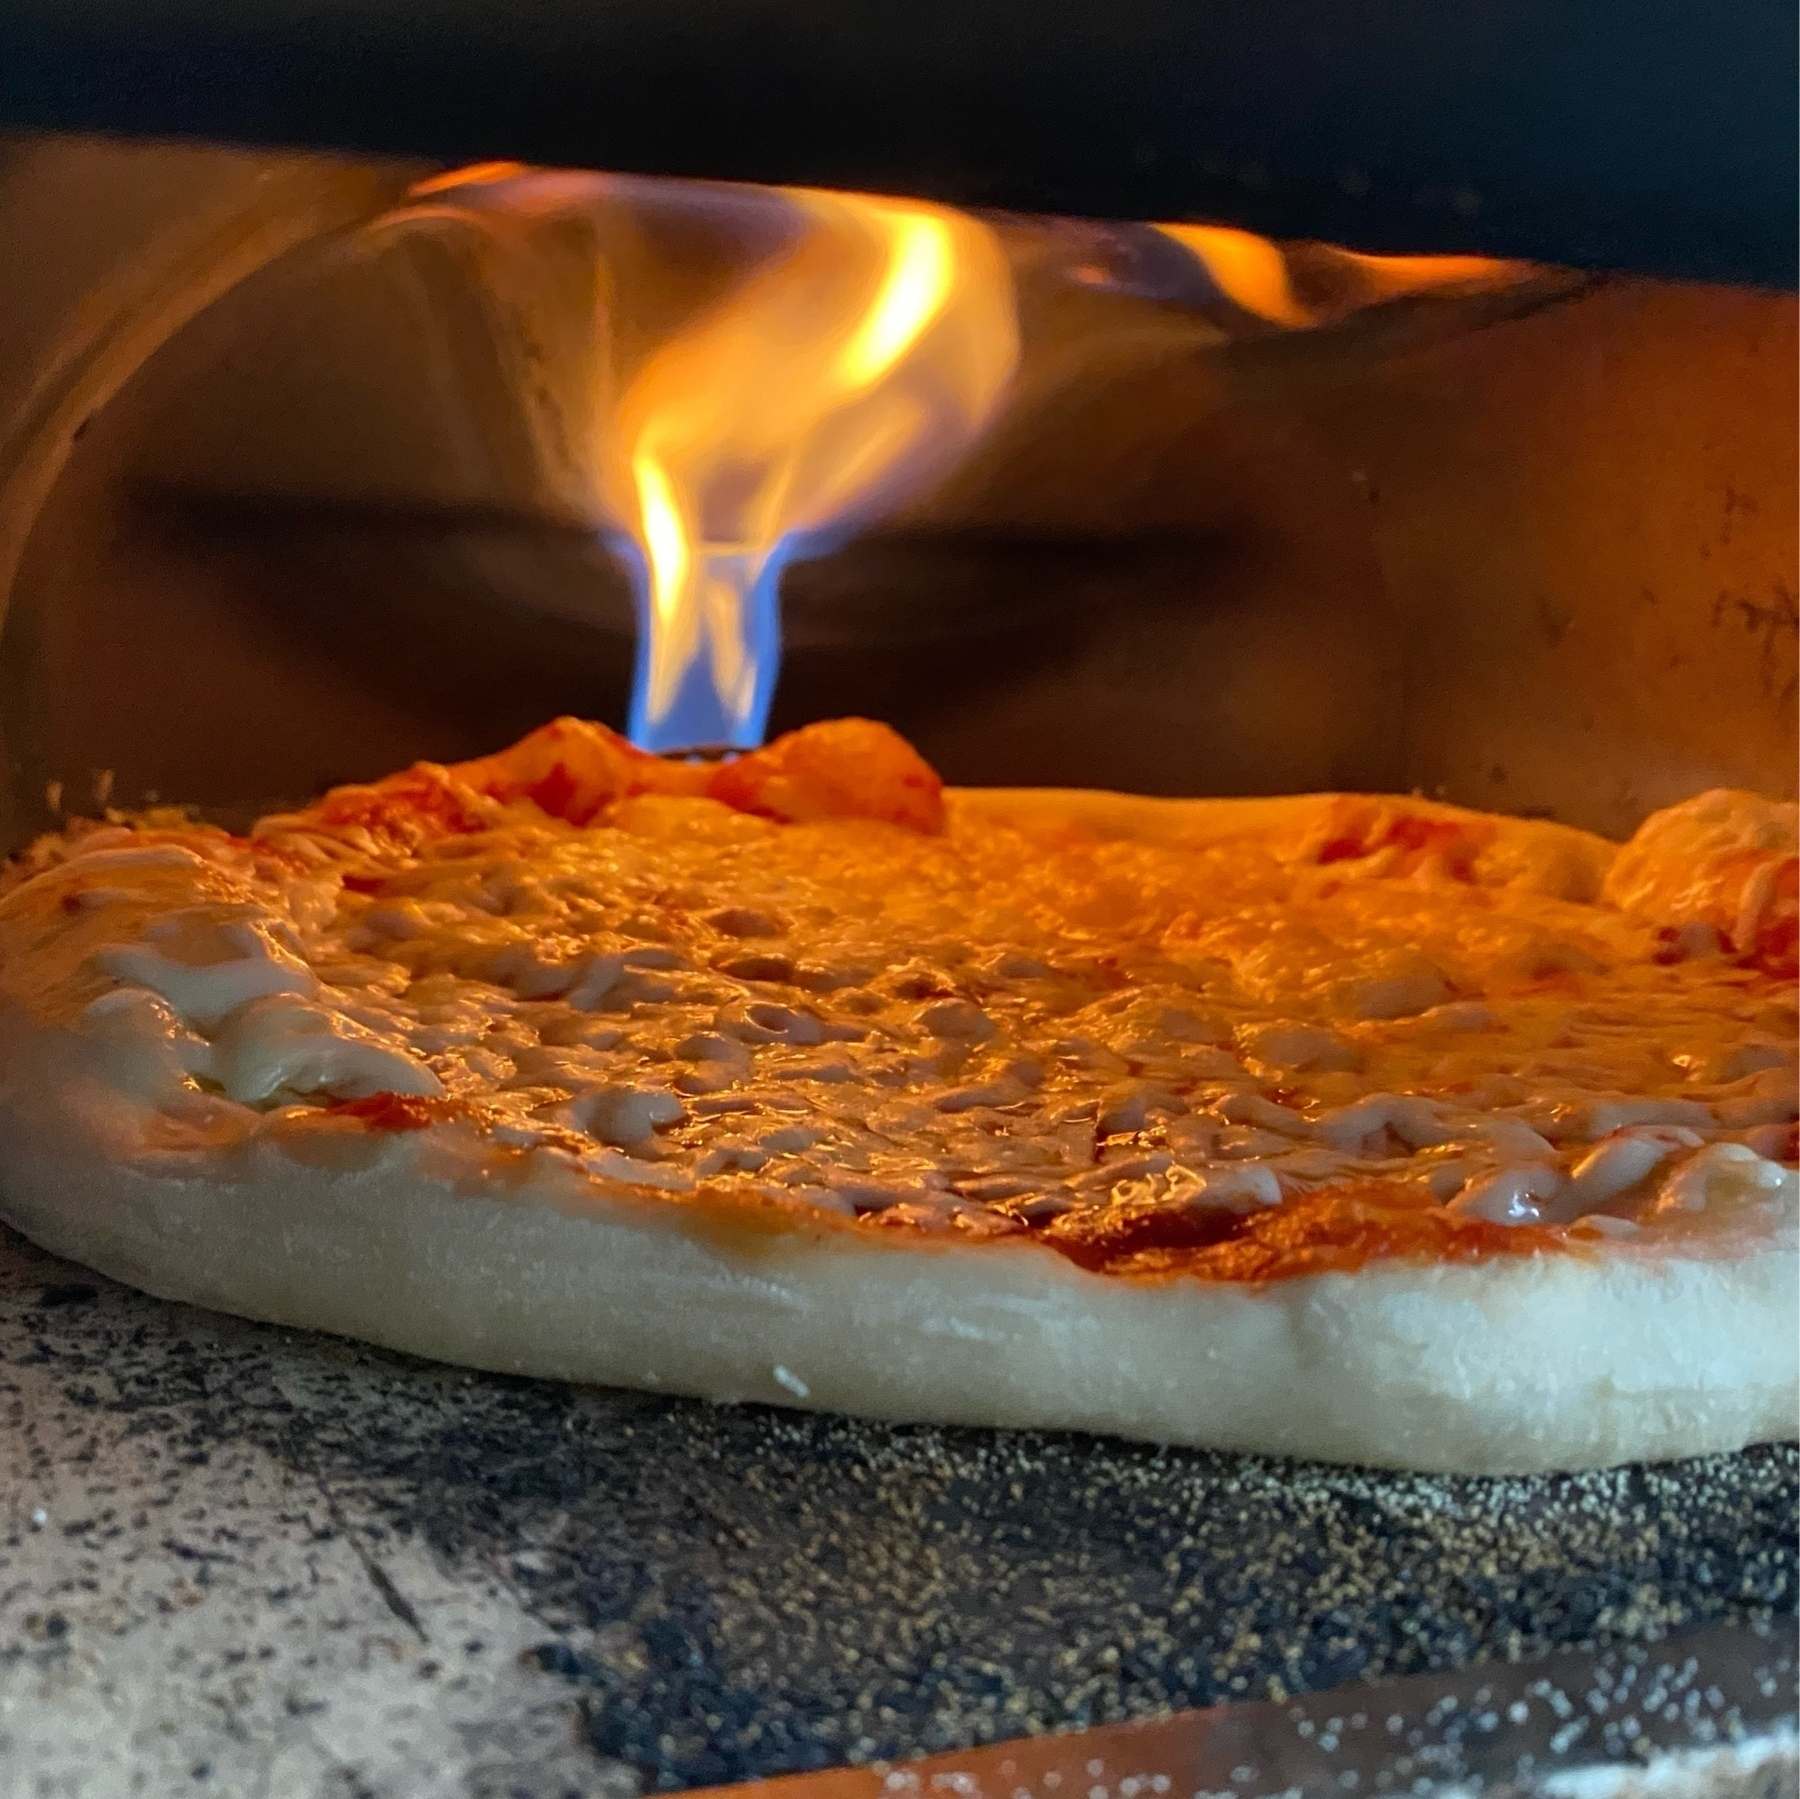 picture of a pizza baking in an oven with prominent flame